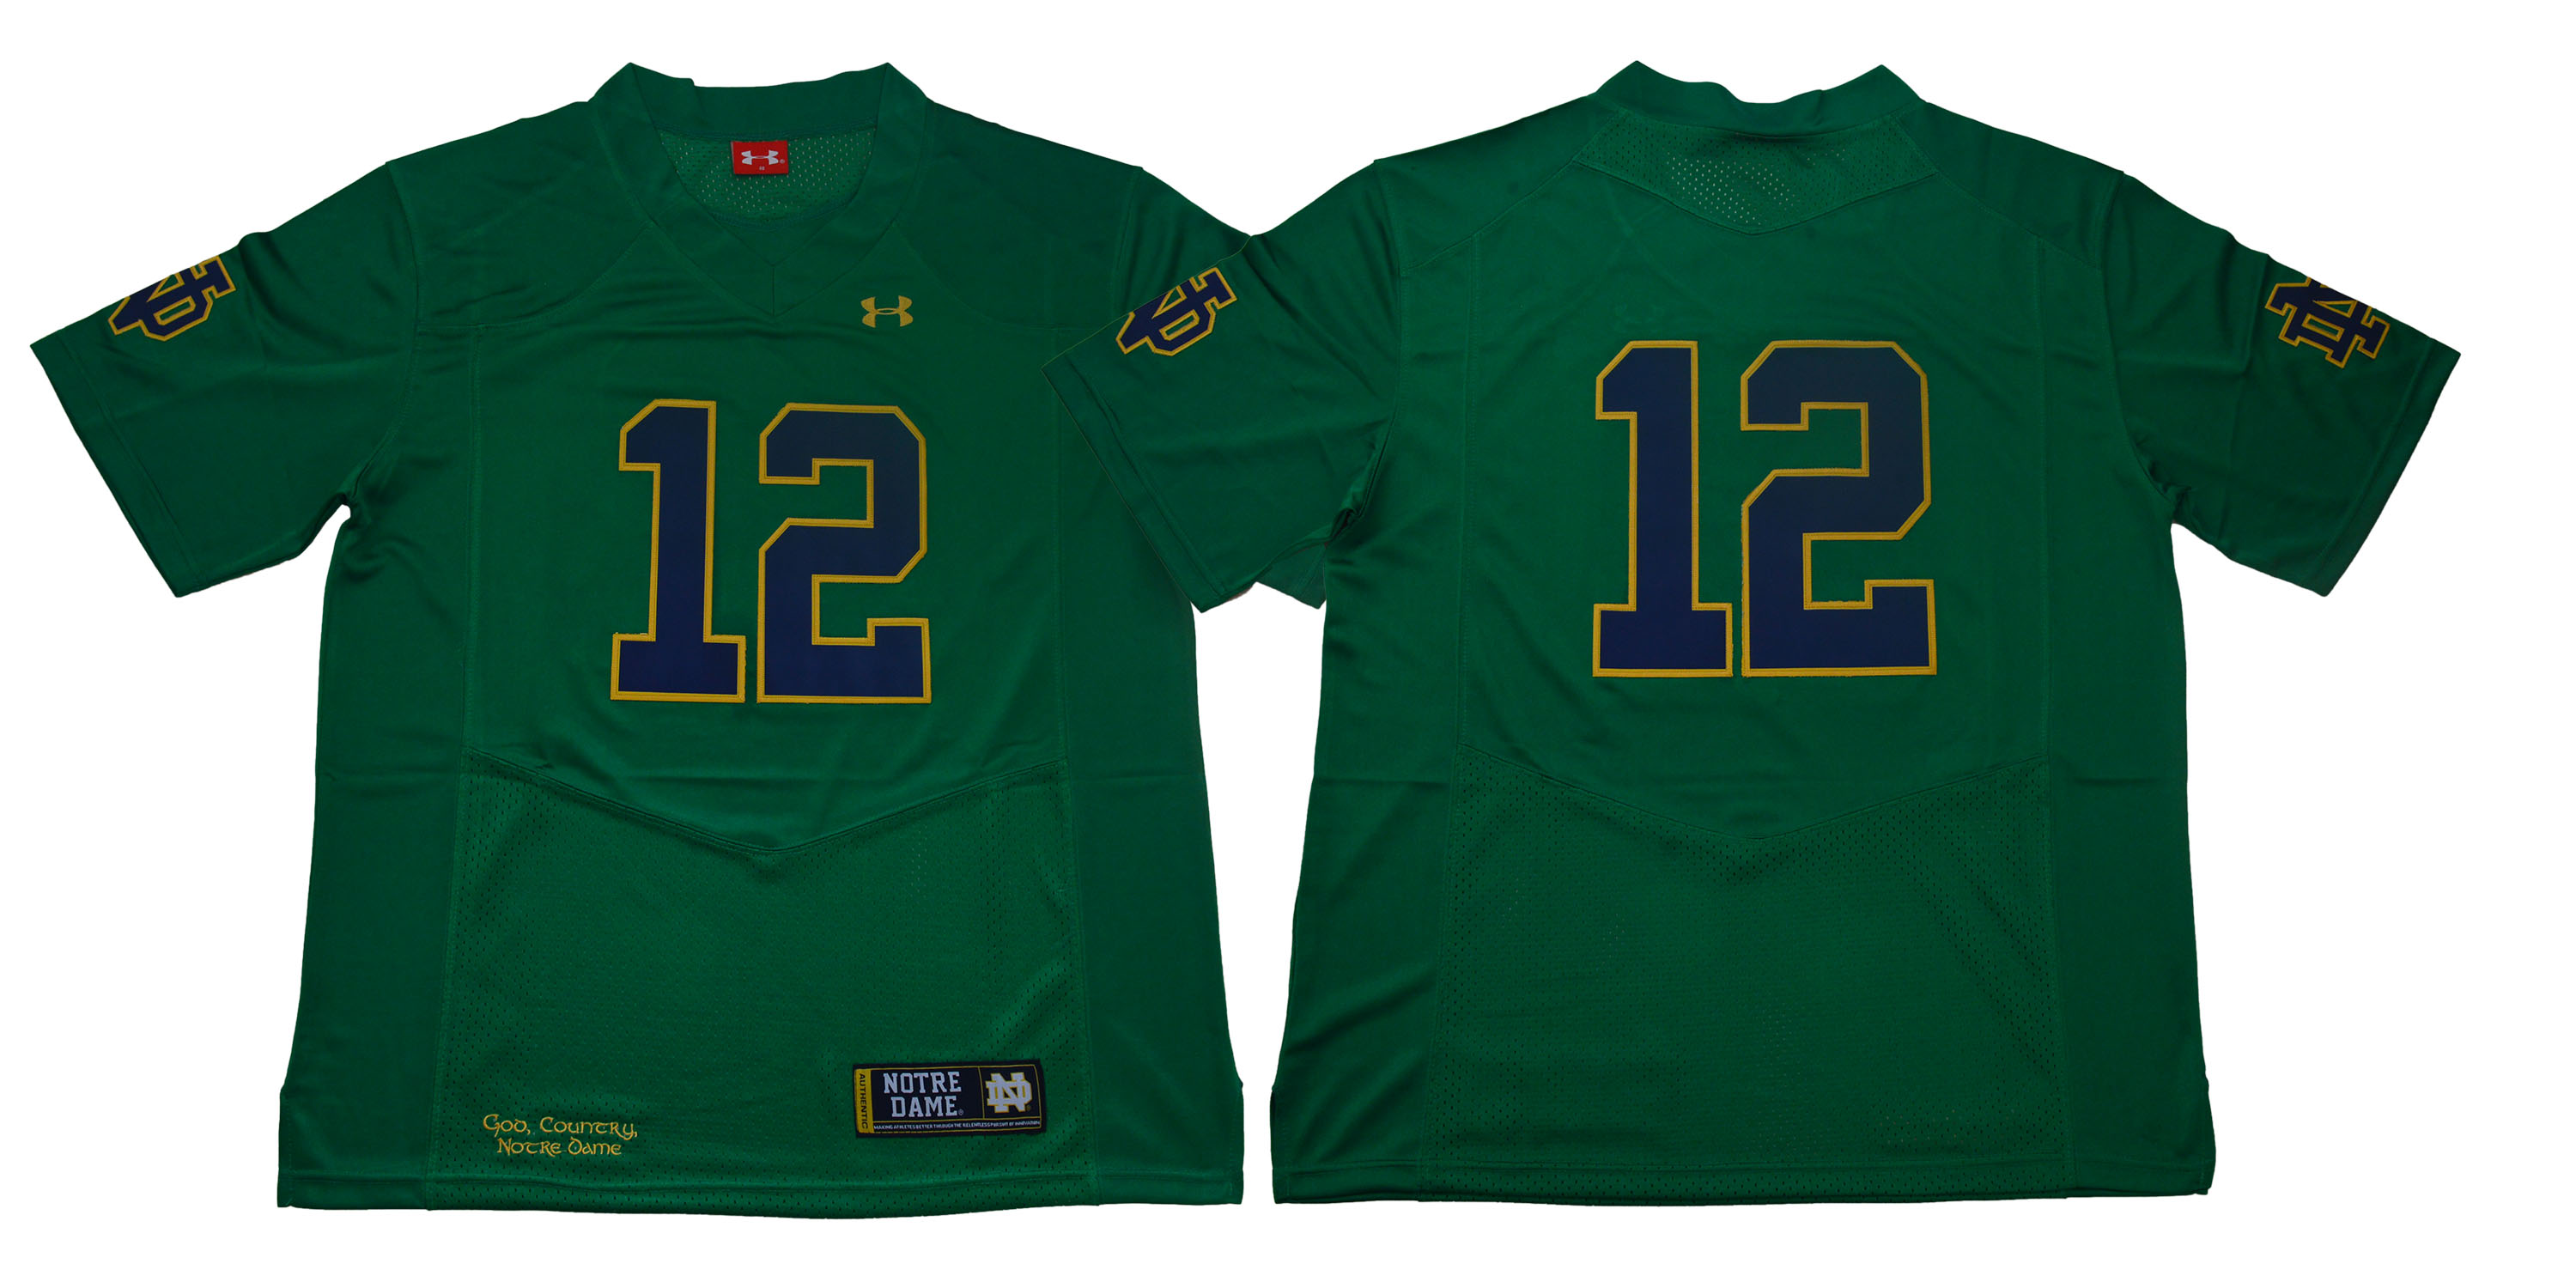 Notre Dame Fighting Irish #12 Green Under Armour College Football Jersey